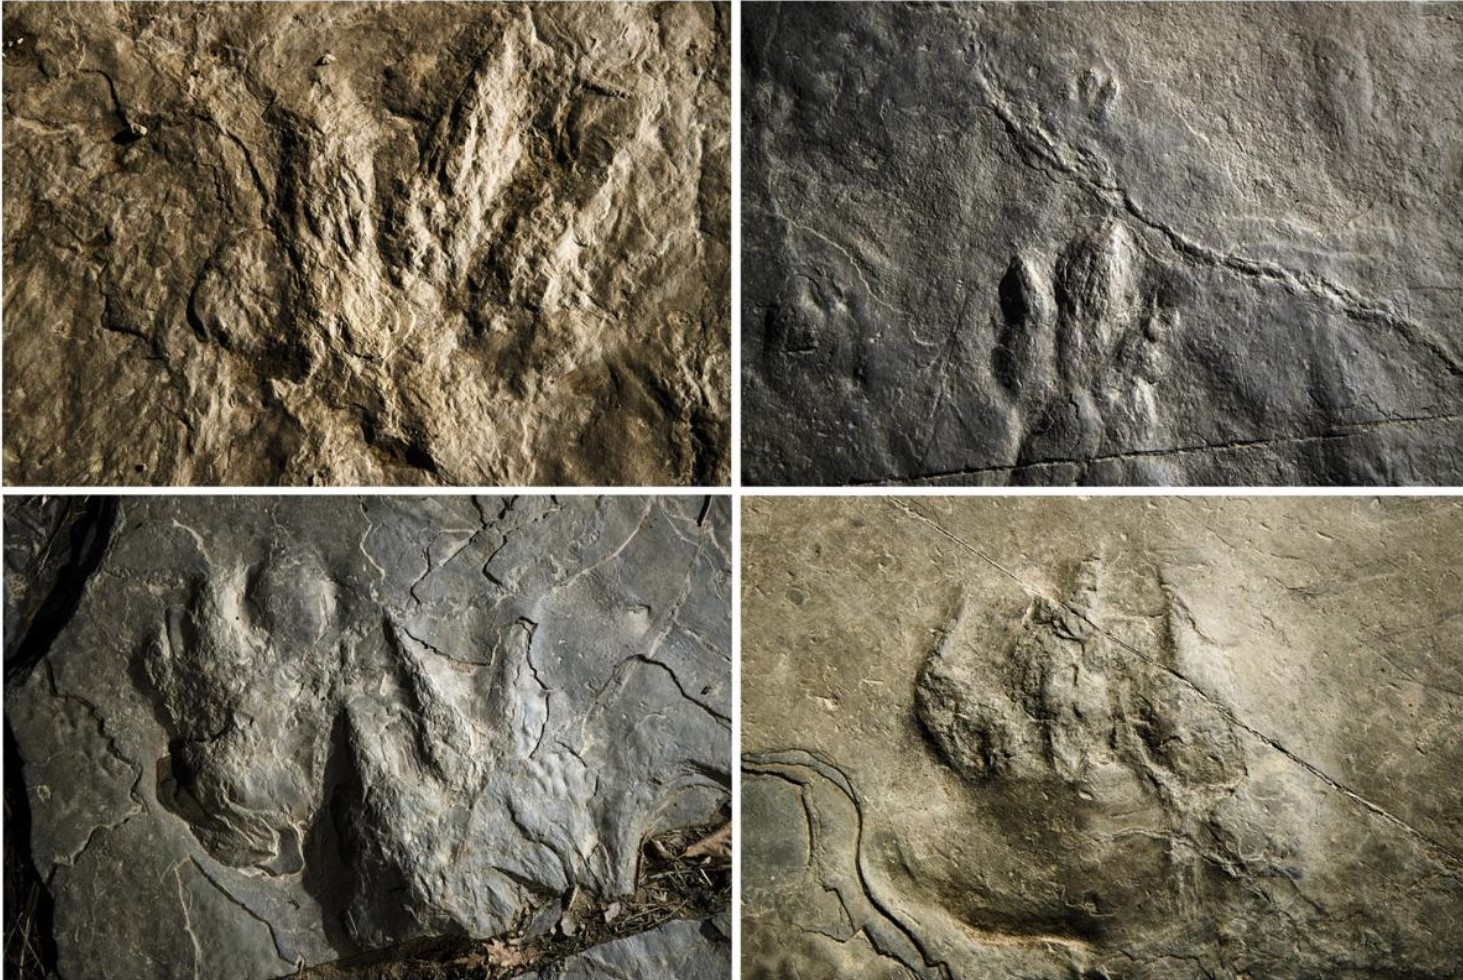 Dinosaur Tracks Discovered in Valley Forge Park